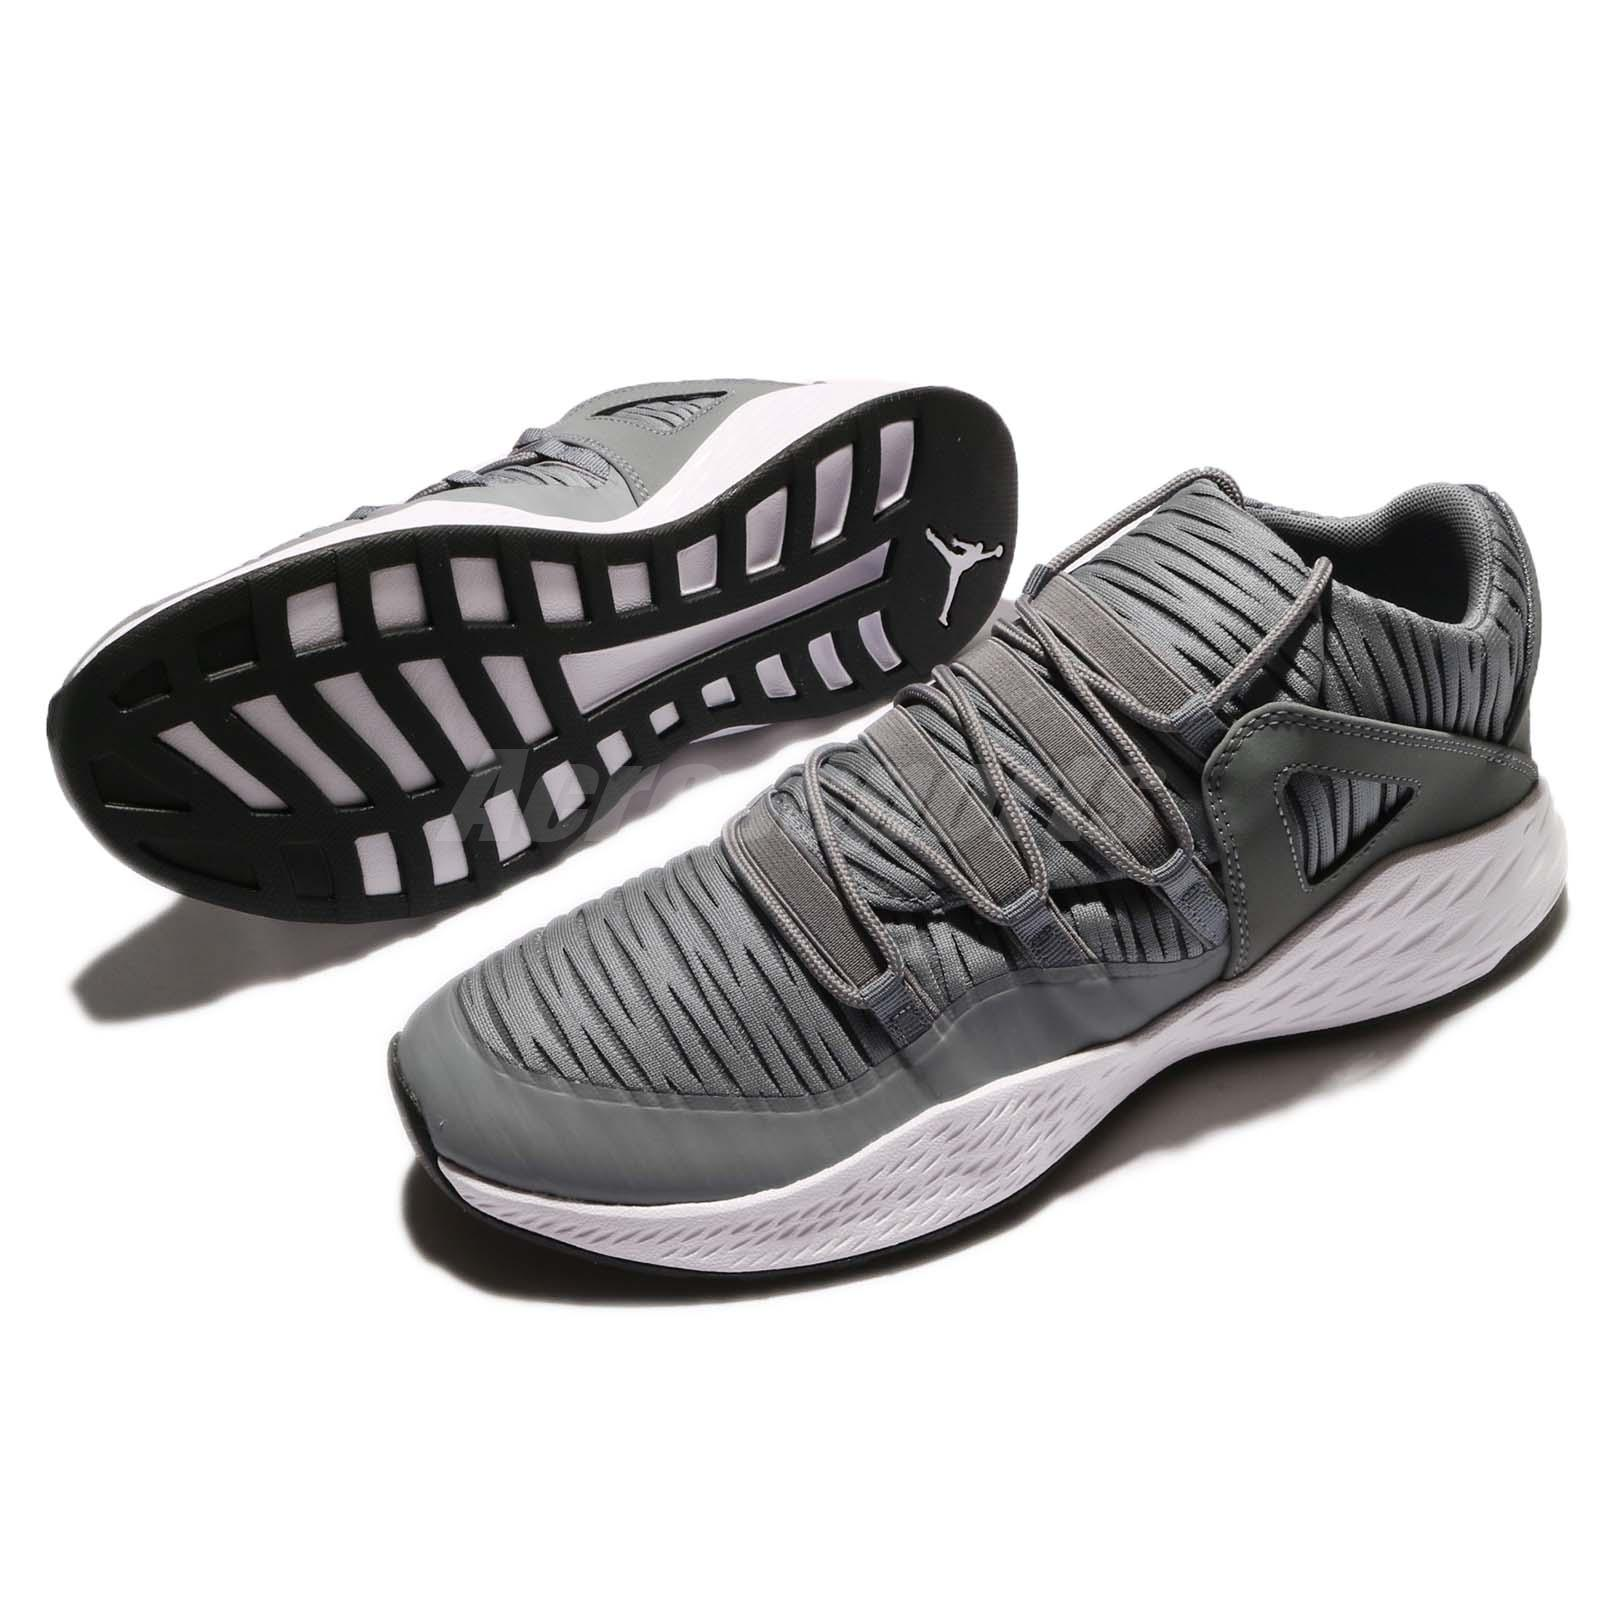 296a61c58aa0 Nike Jordan Formula 23 Low Cool Grey White Men Lifestyle Shoes AJX ...